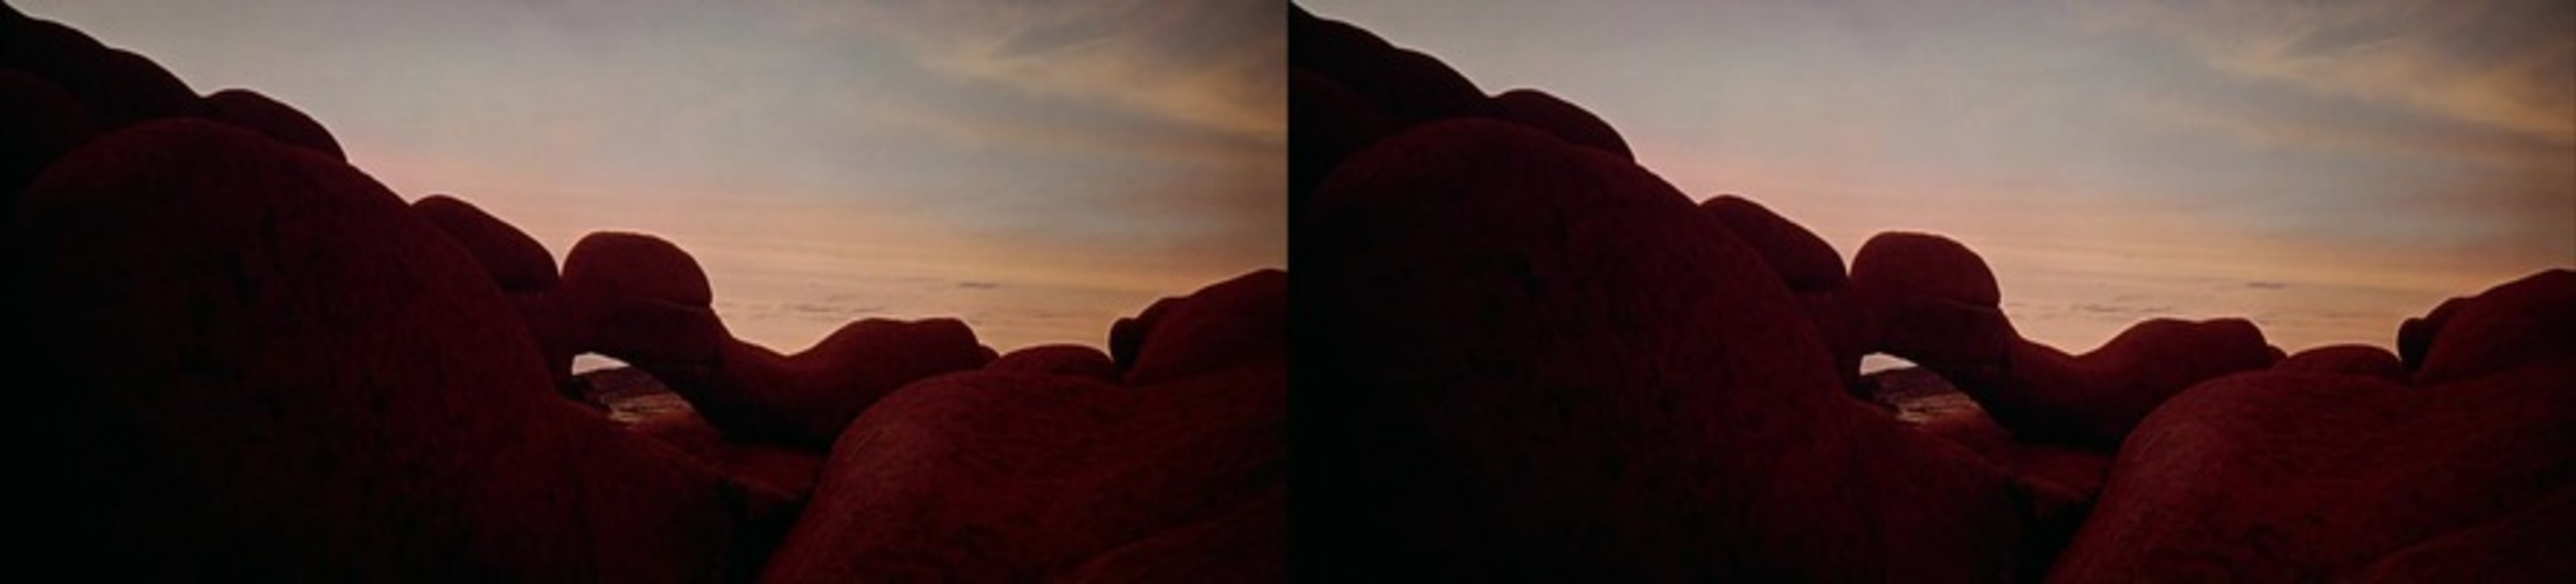 The image is clearly divided down the middle, creating a left side and a right side. Left side: a rock formation with rosy clouds and blue sky behind it. Right side: same as the left side.